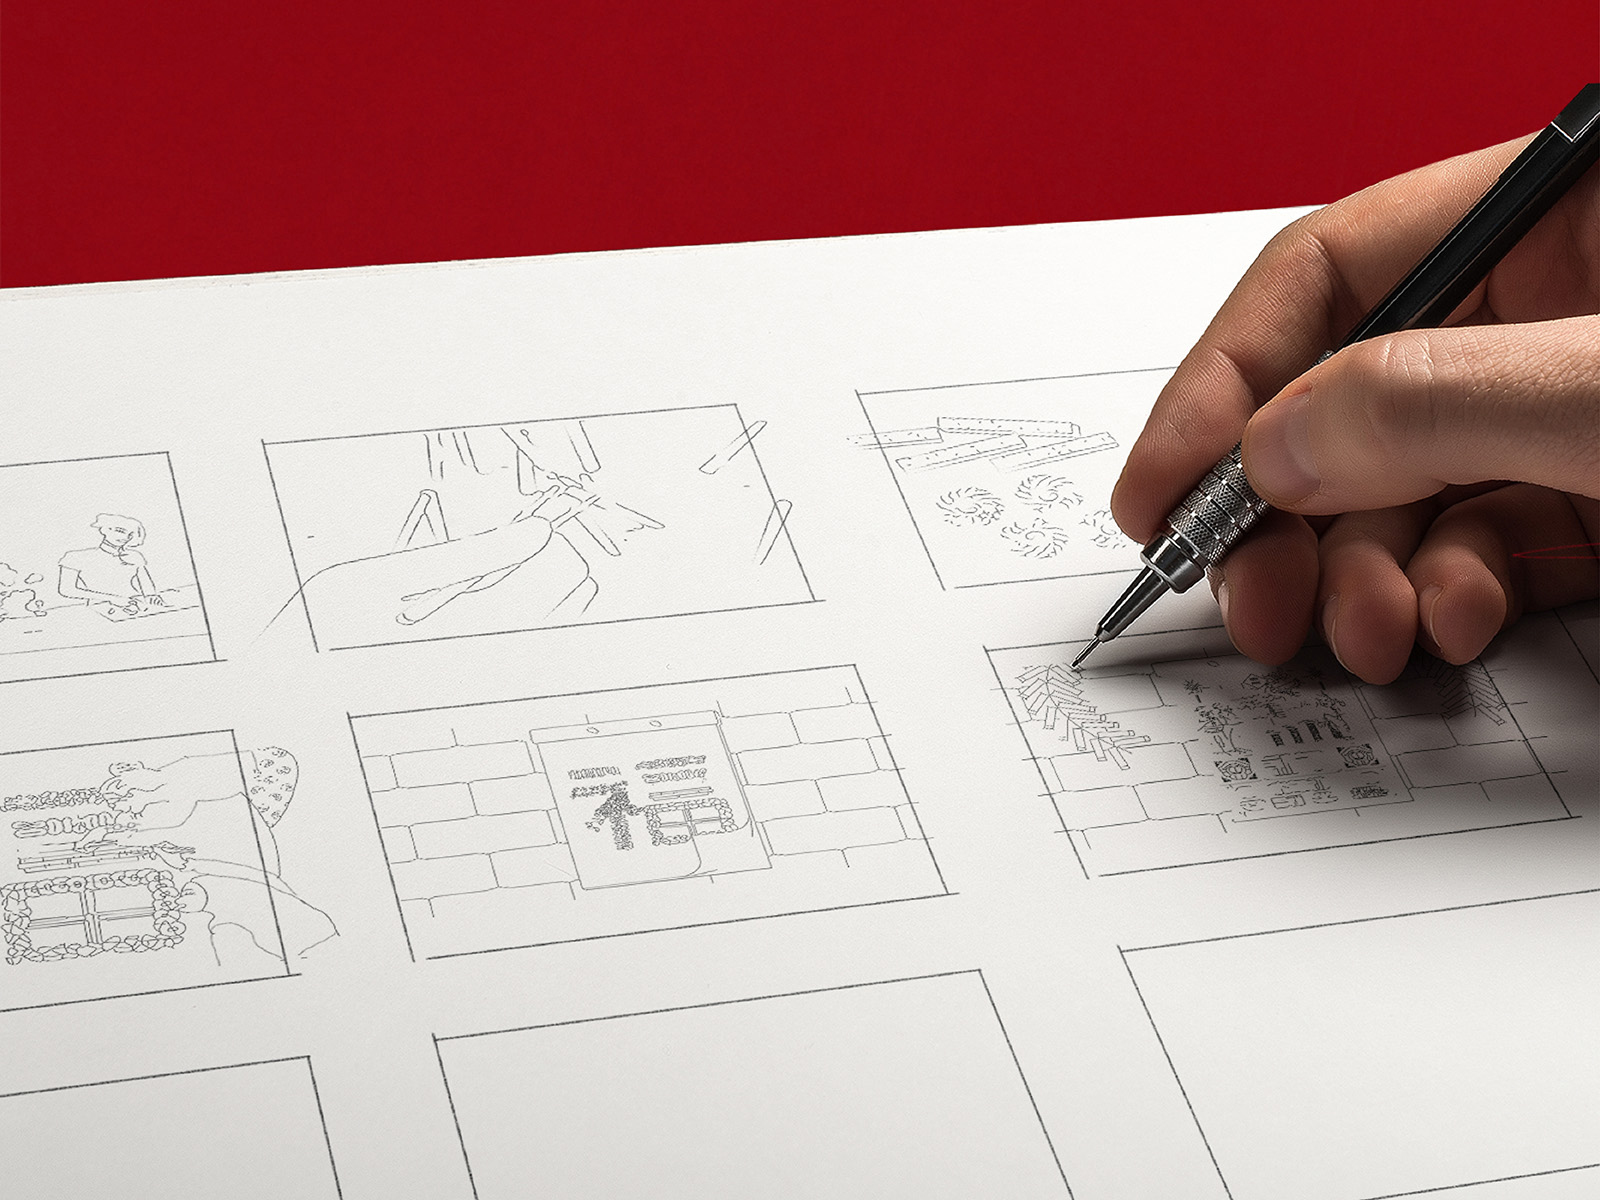 Sime Darby Chinese New Year 2020 campaign animated festive video storyboard development